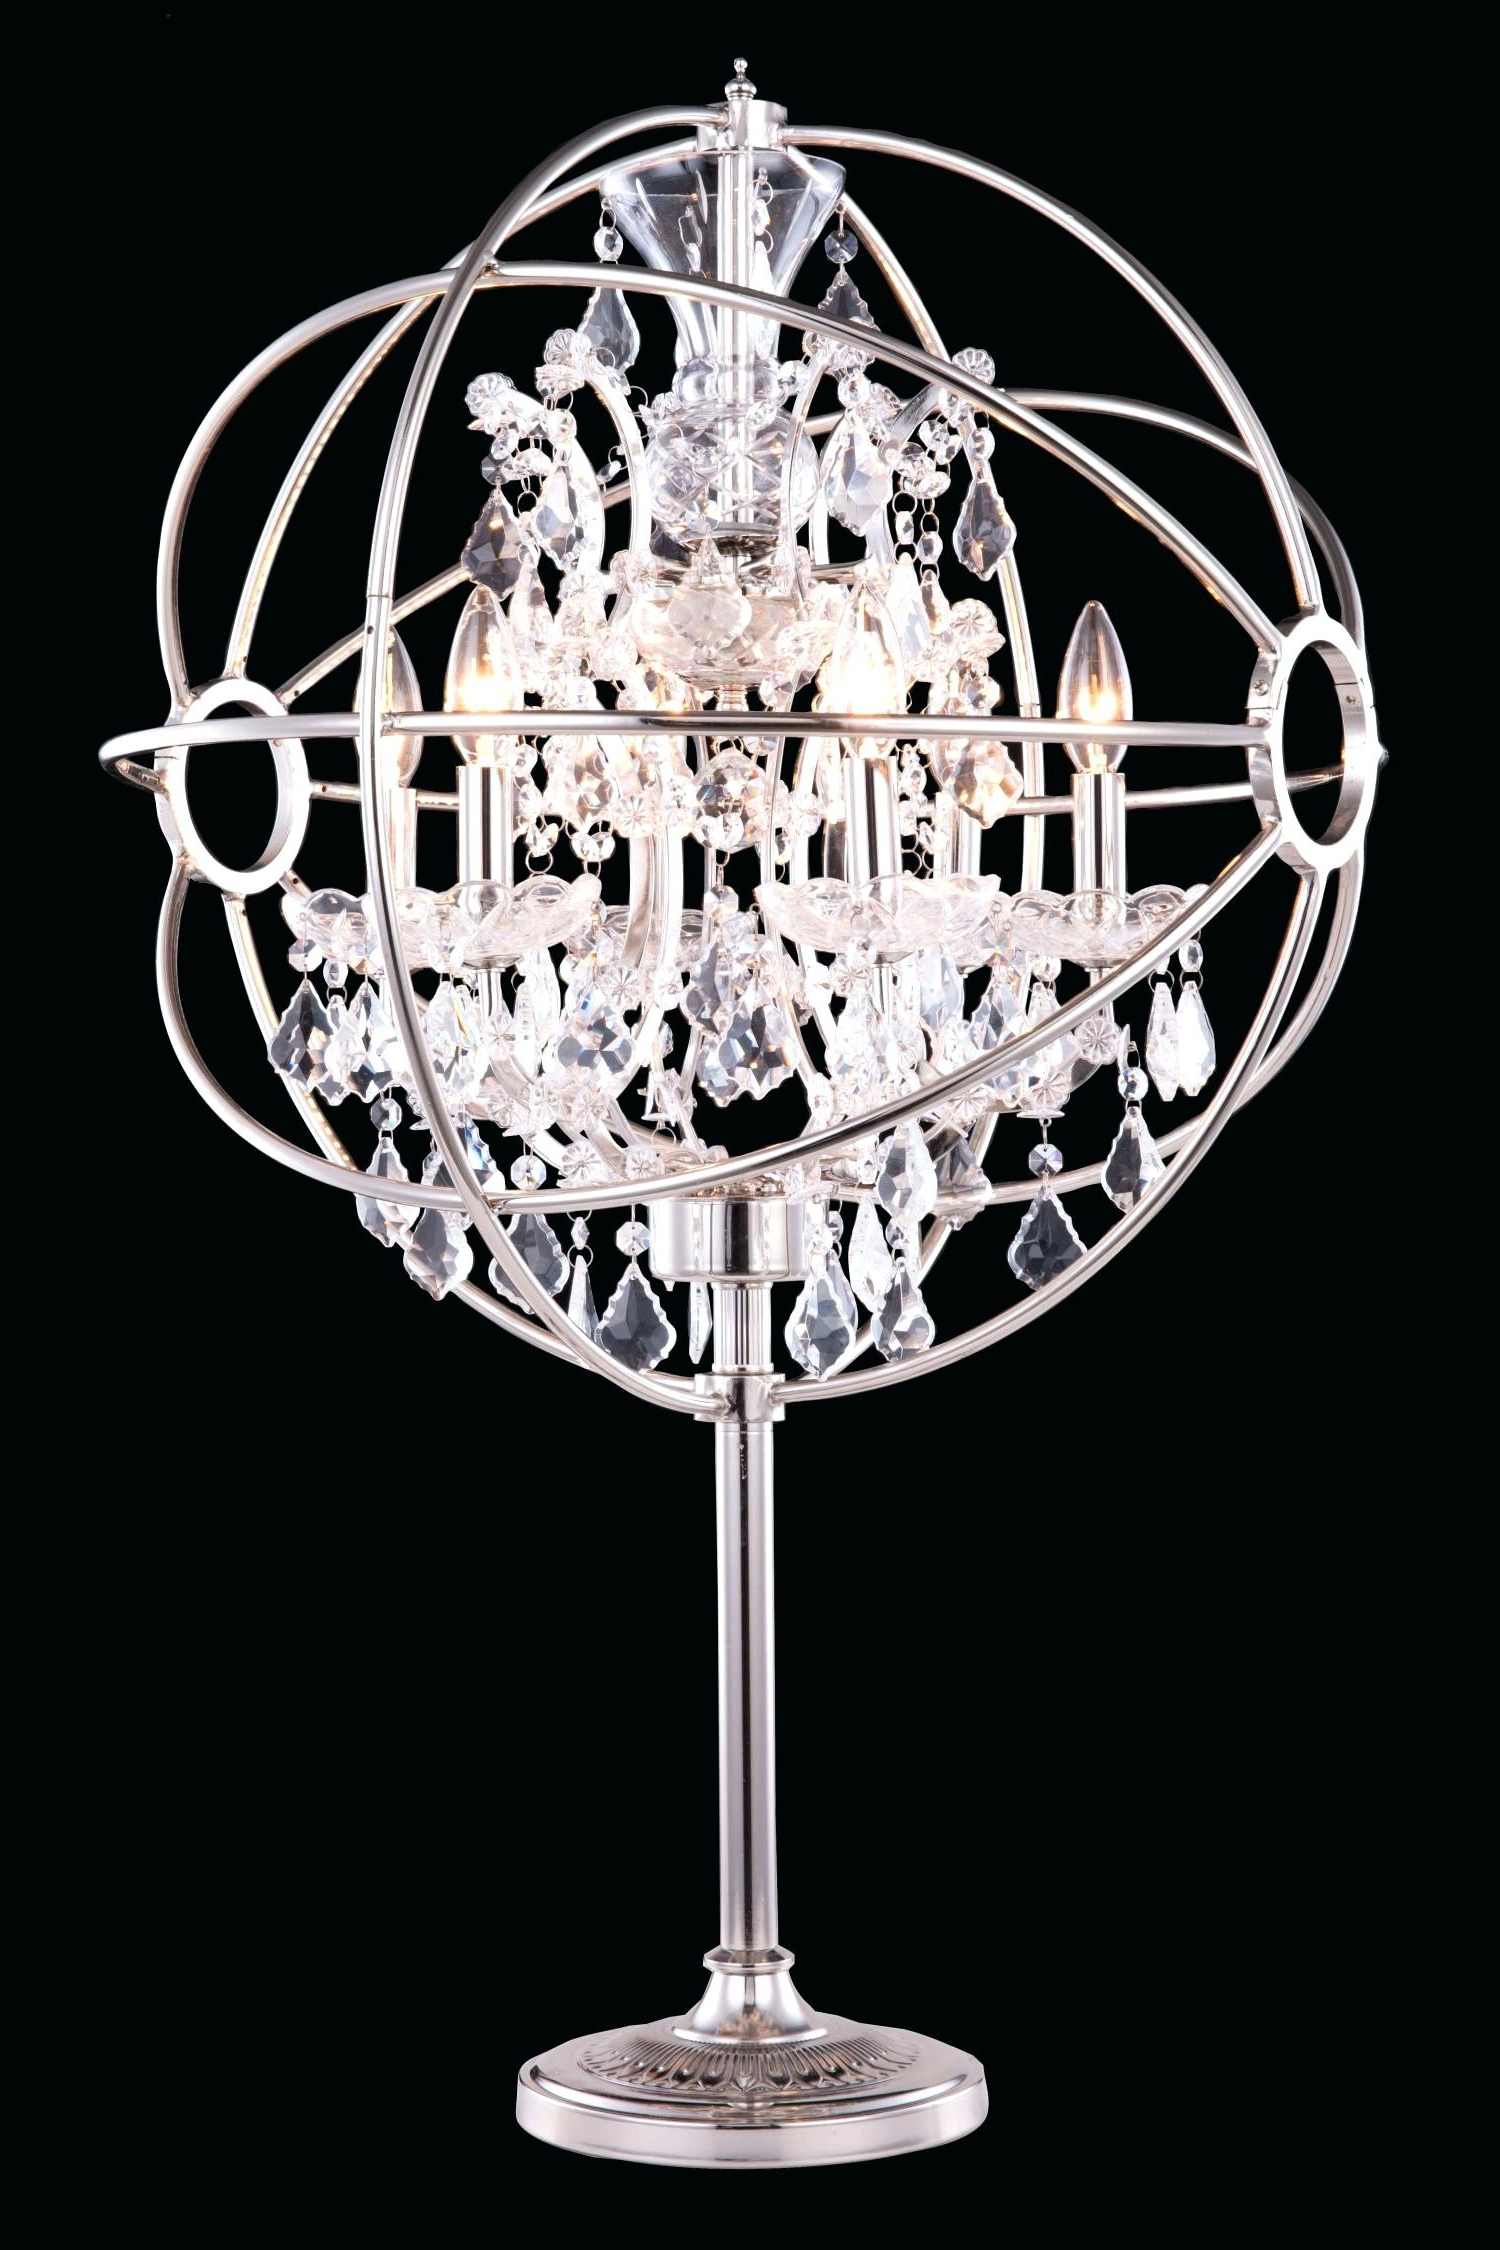 Black Crystal Chandelier Table Lamps – Homeinteriorideas (View 1 of 15)